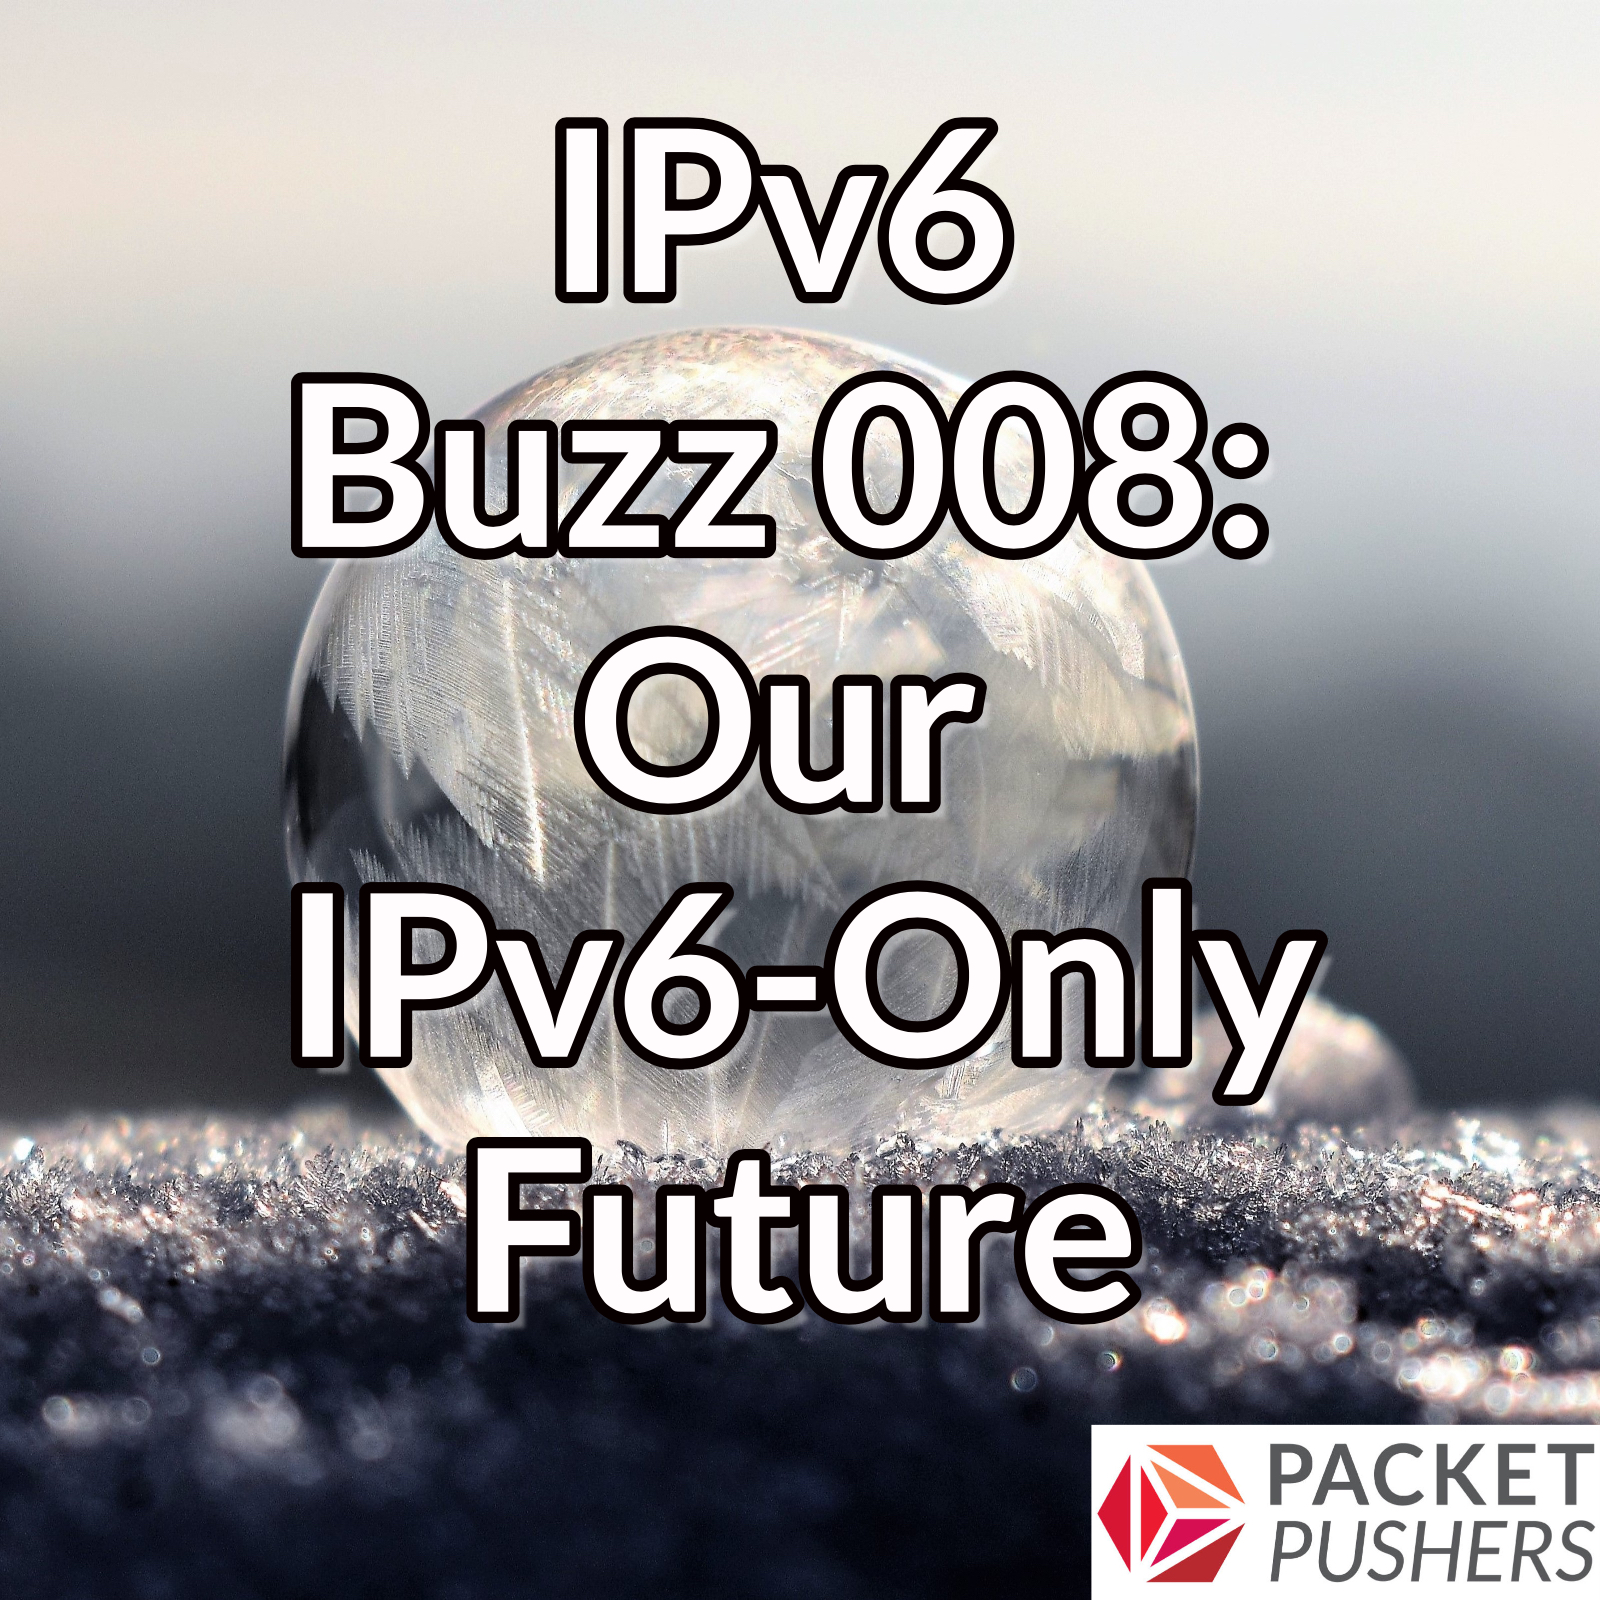 IPv6 only future